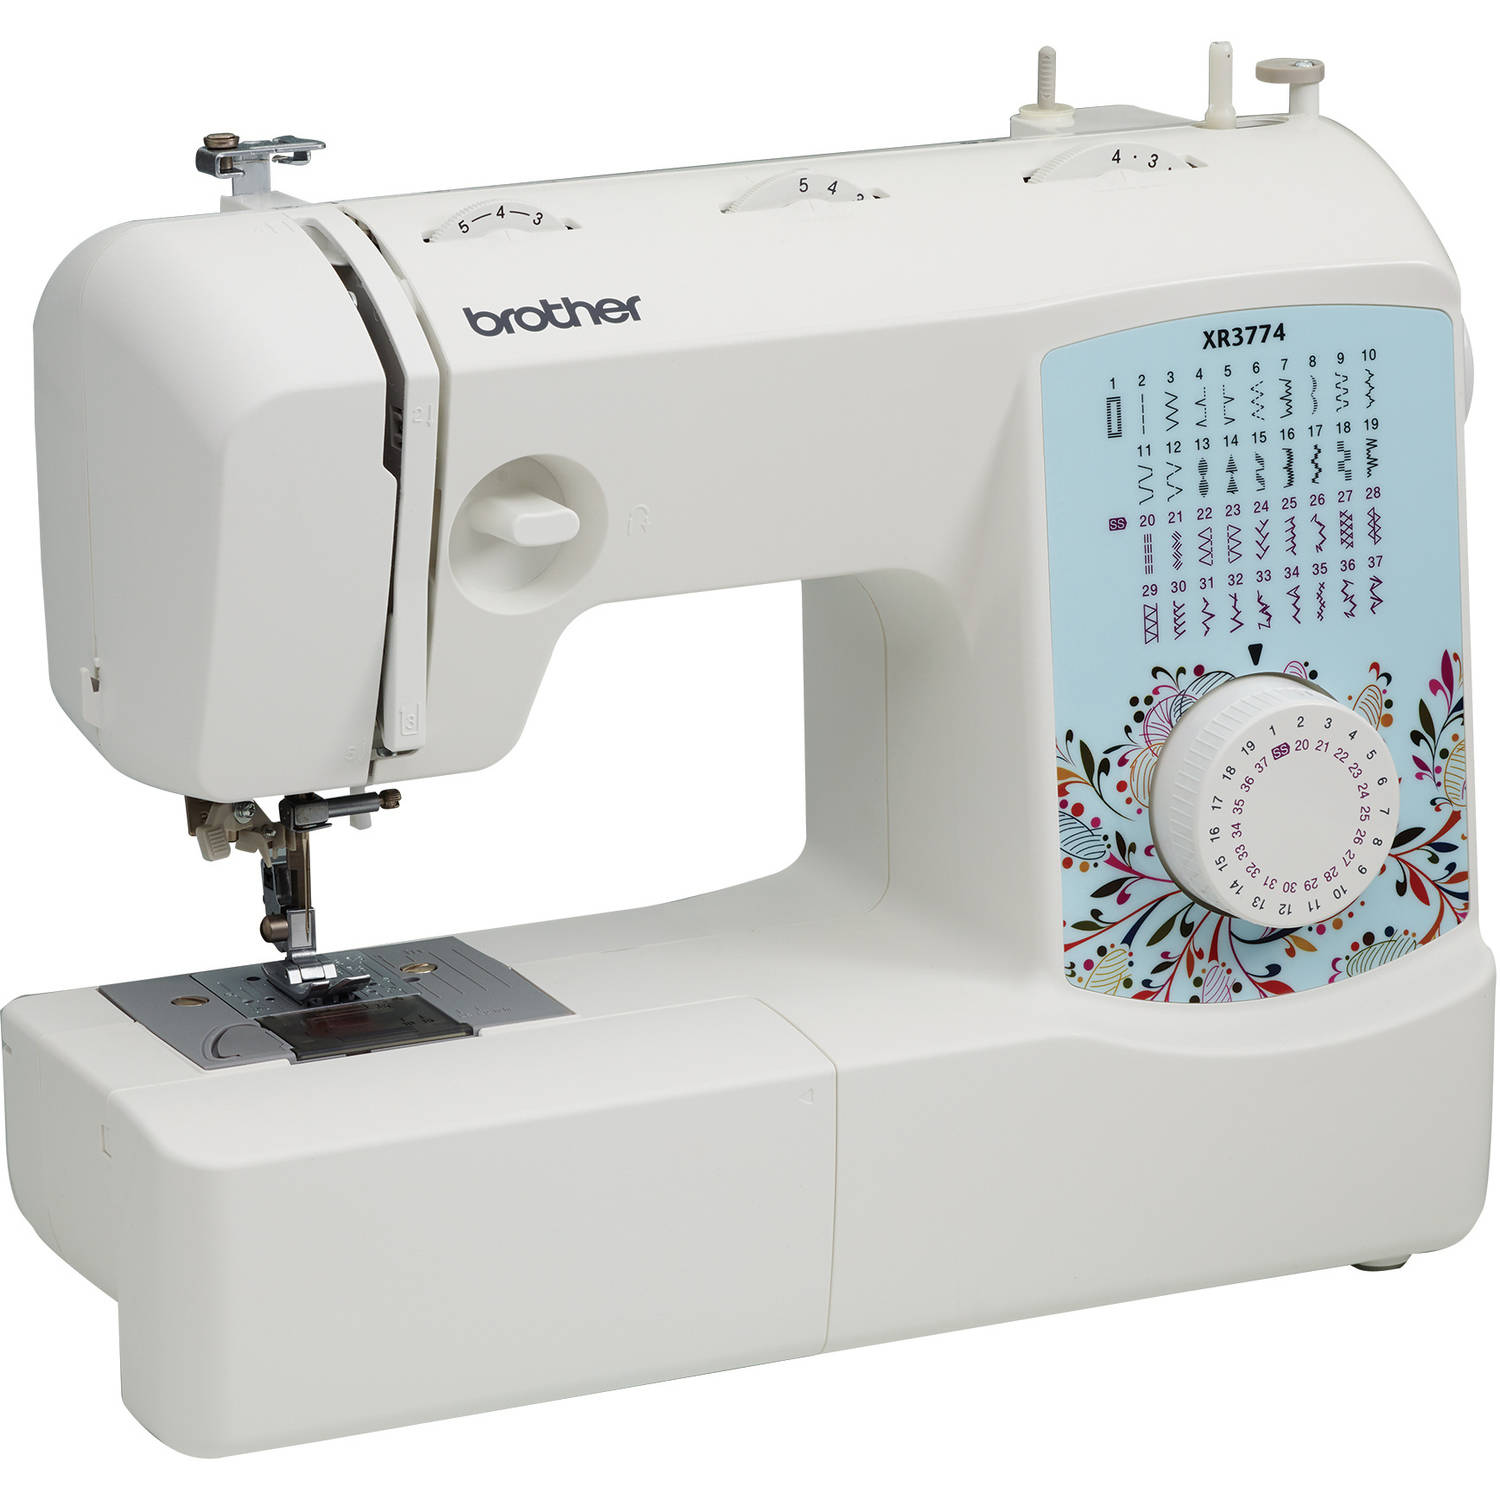 10 Best Sewing Machines In US Under $200 – 2016 List